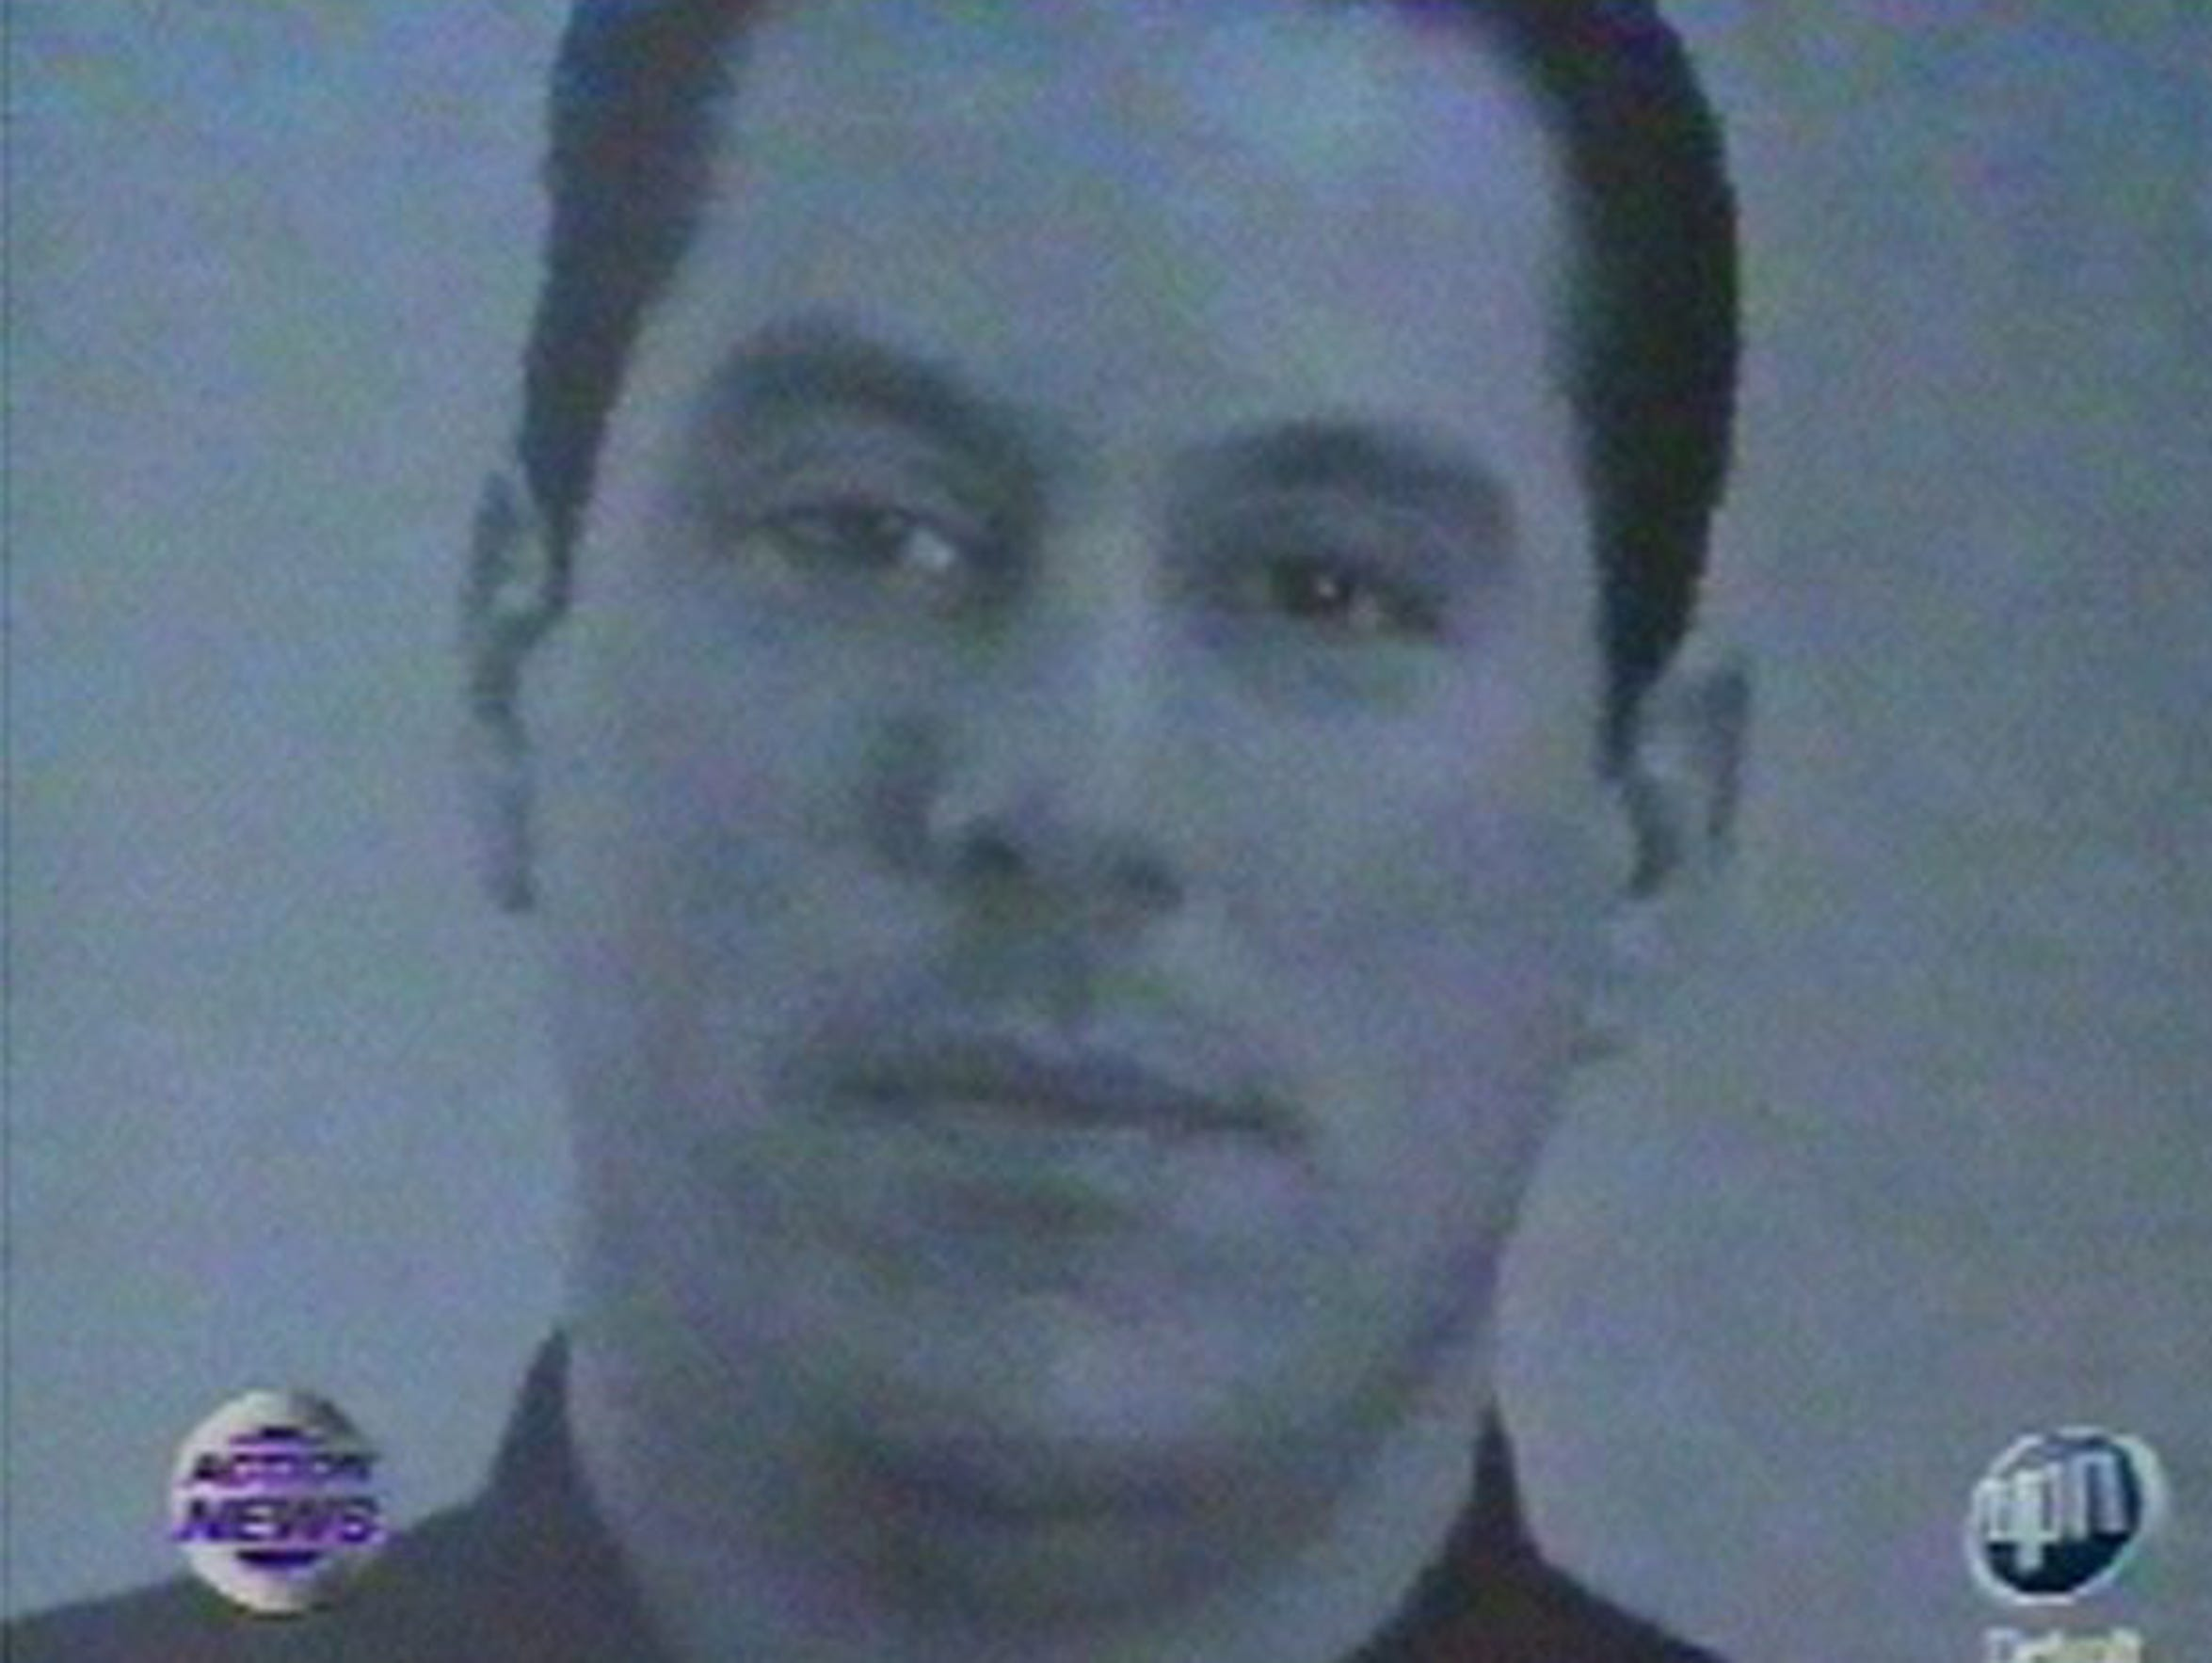 Detroit Police Officer William Melendez was one of